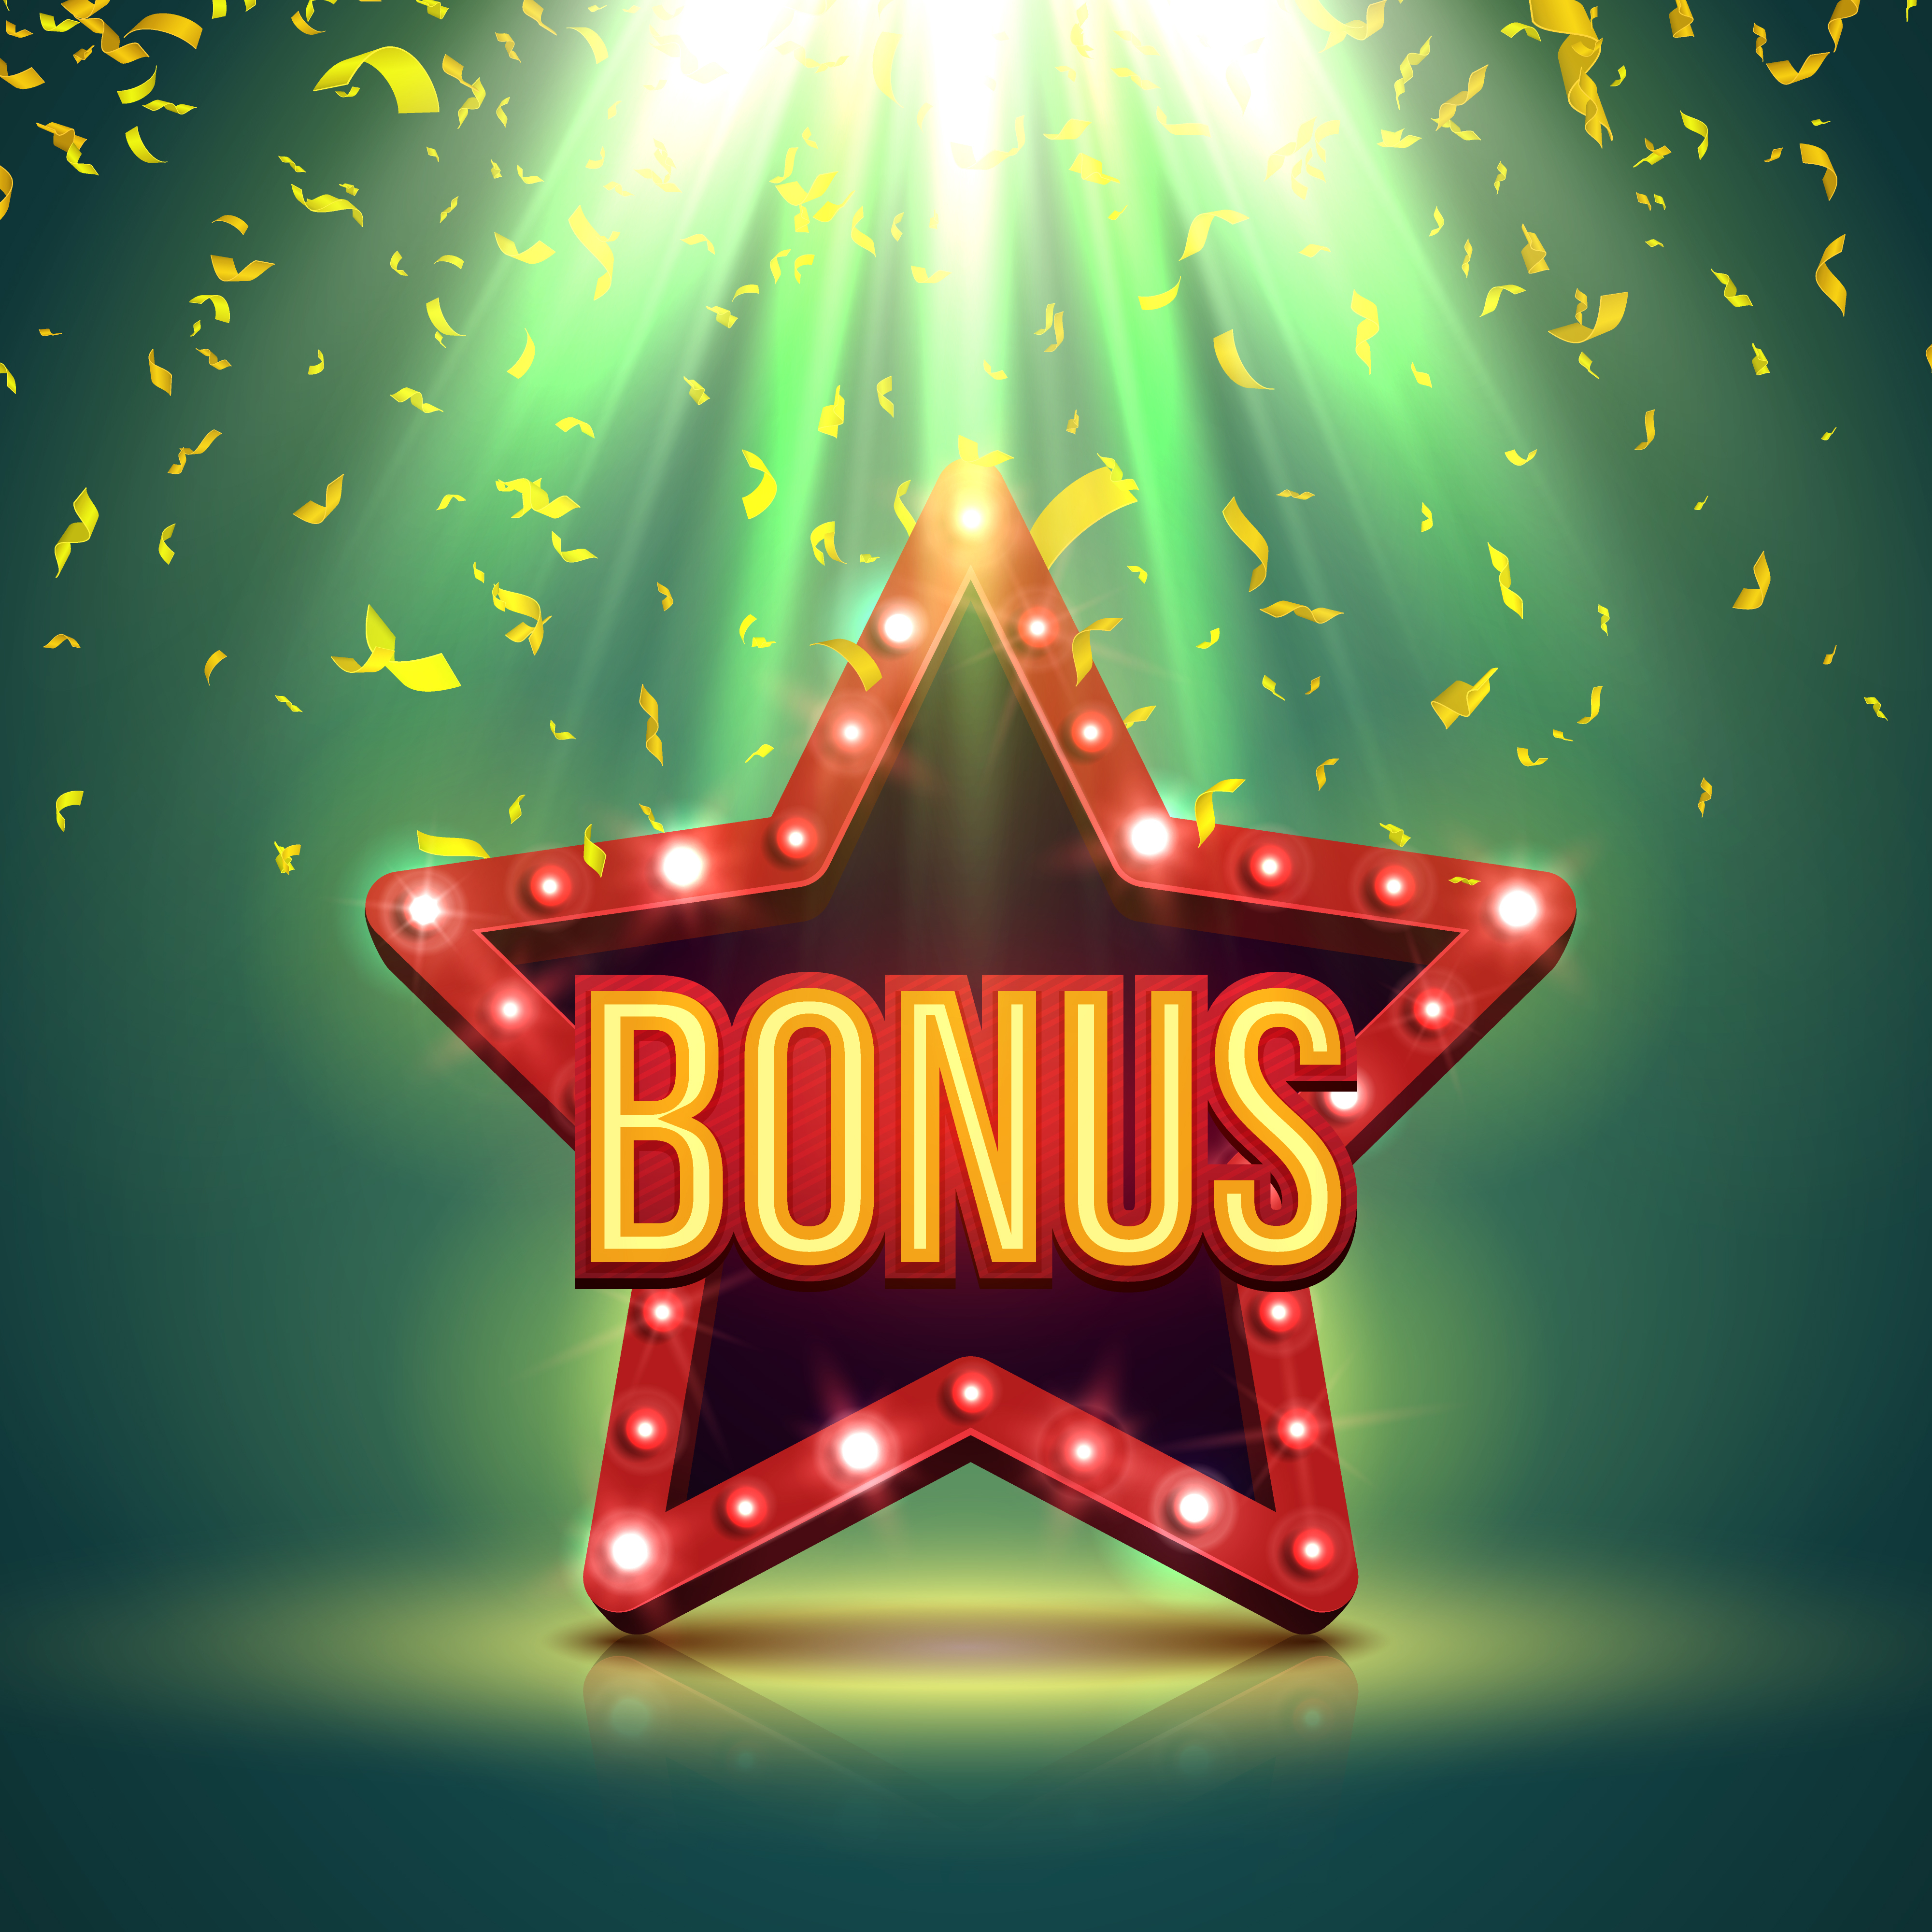 How to wager casino bonuses 60